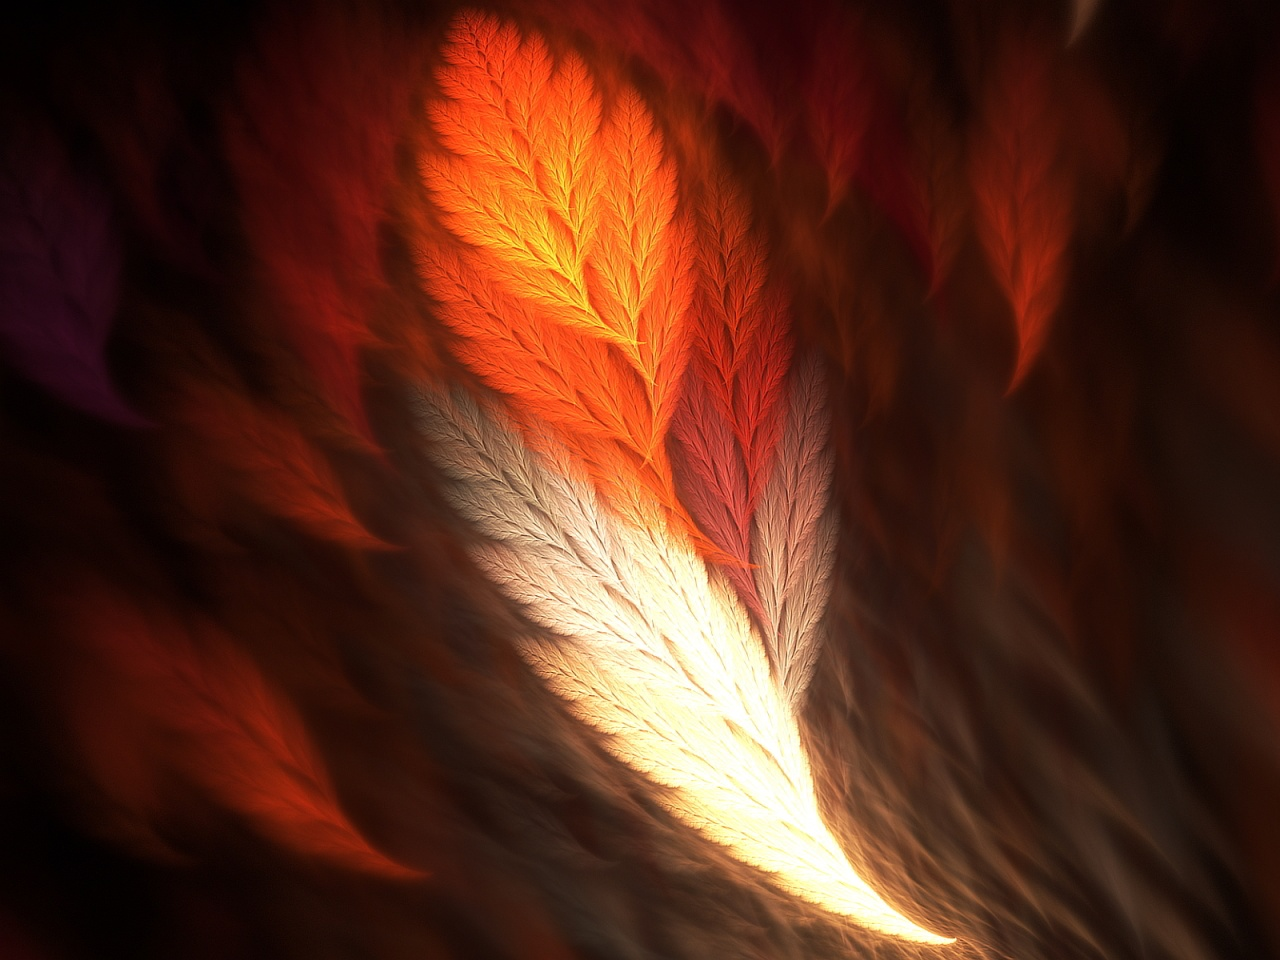 Awesome Feathers HD Wallpaper Download 1280x960